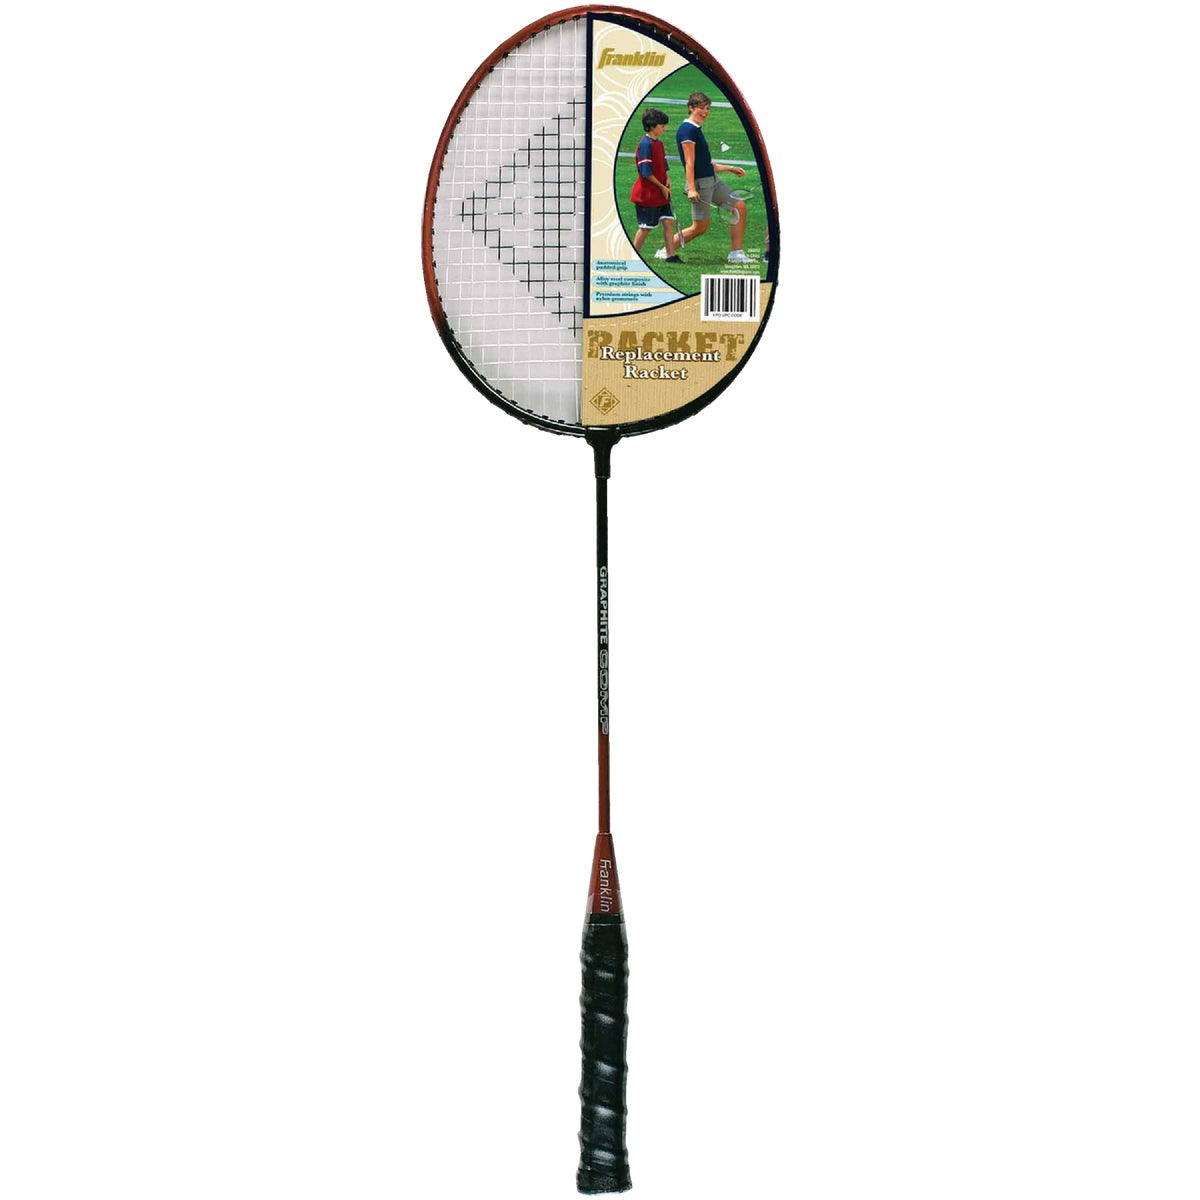 BADMINTON RACKET - 3386/02 by Franklin Sports